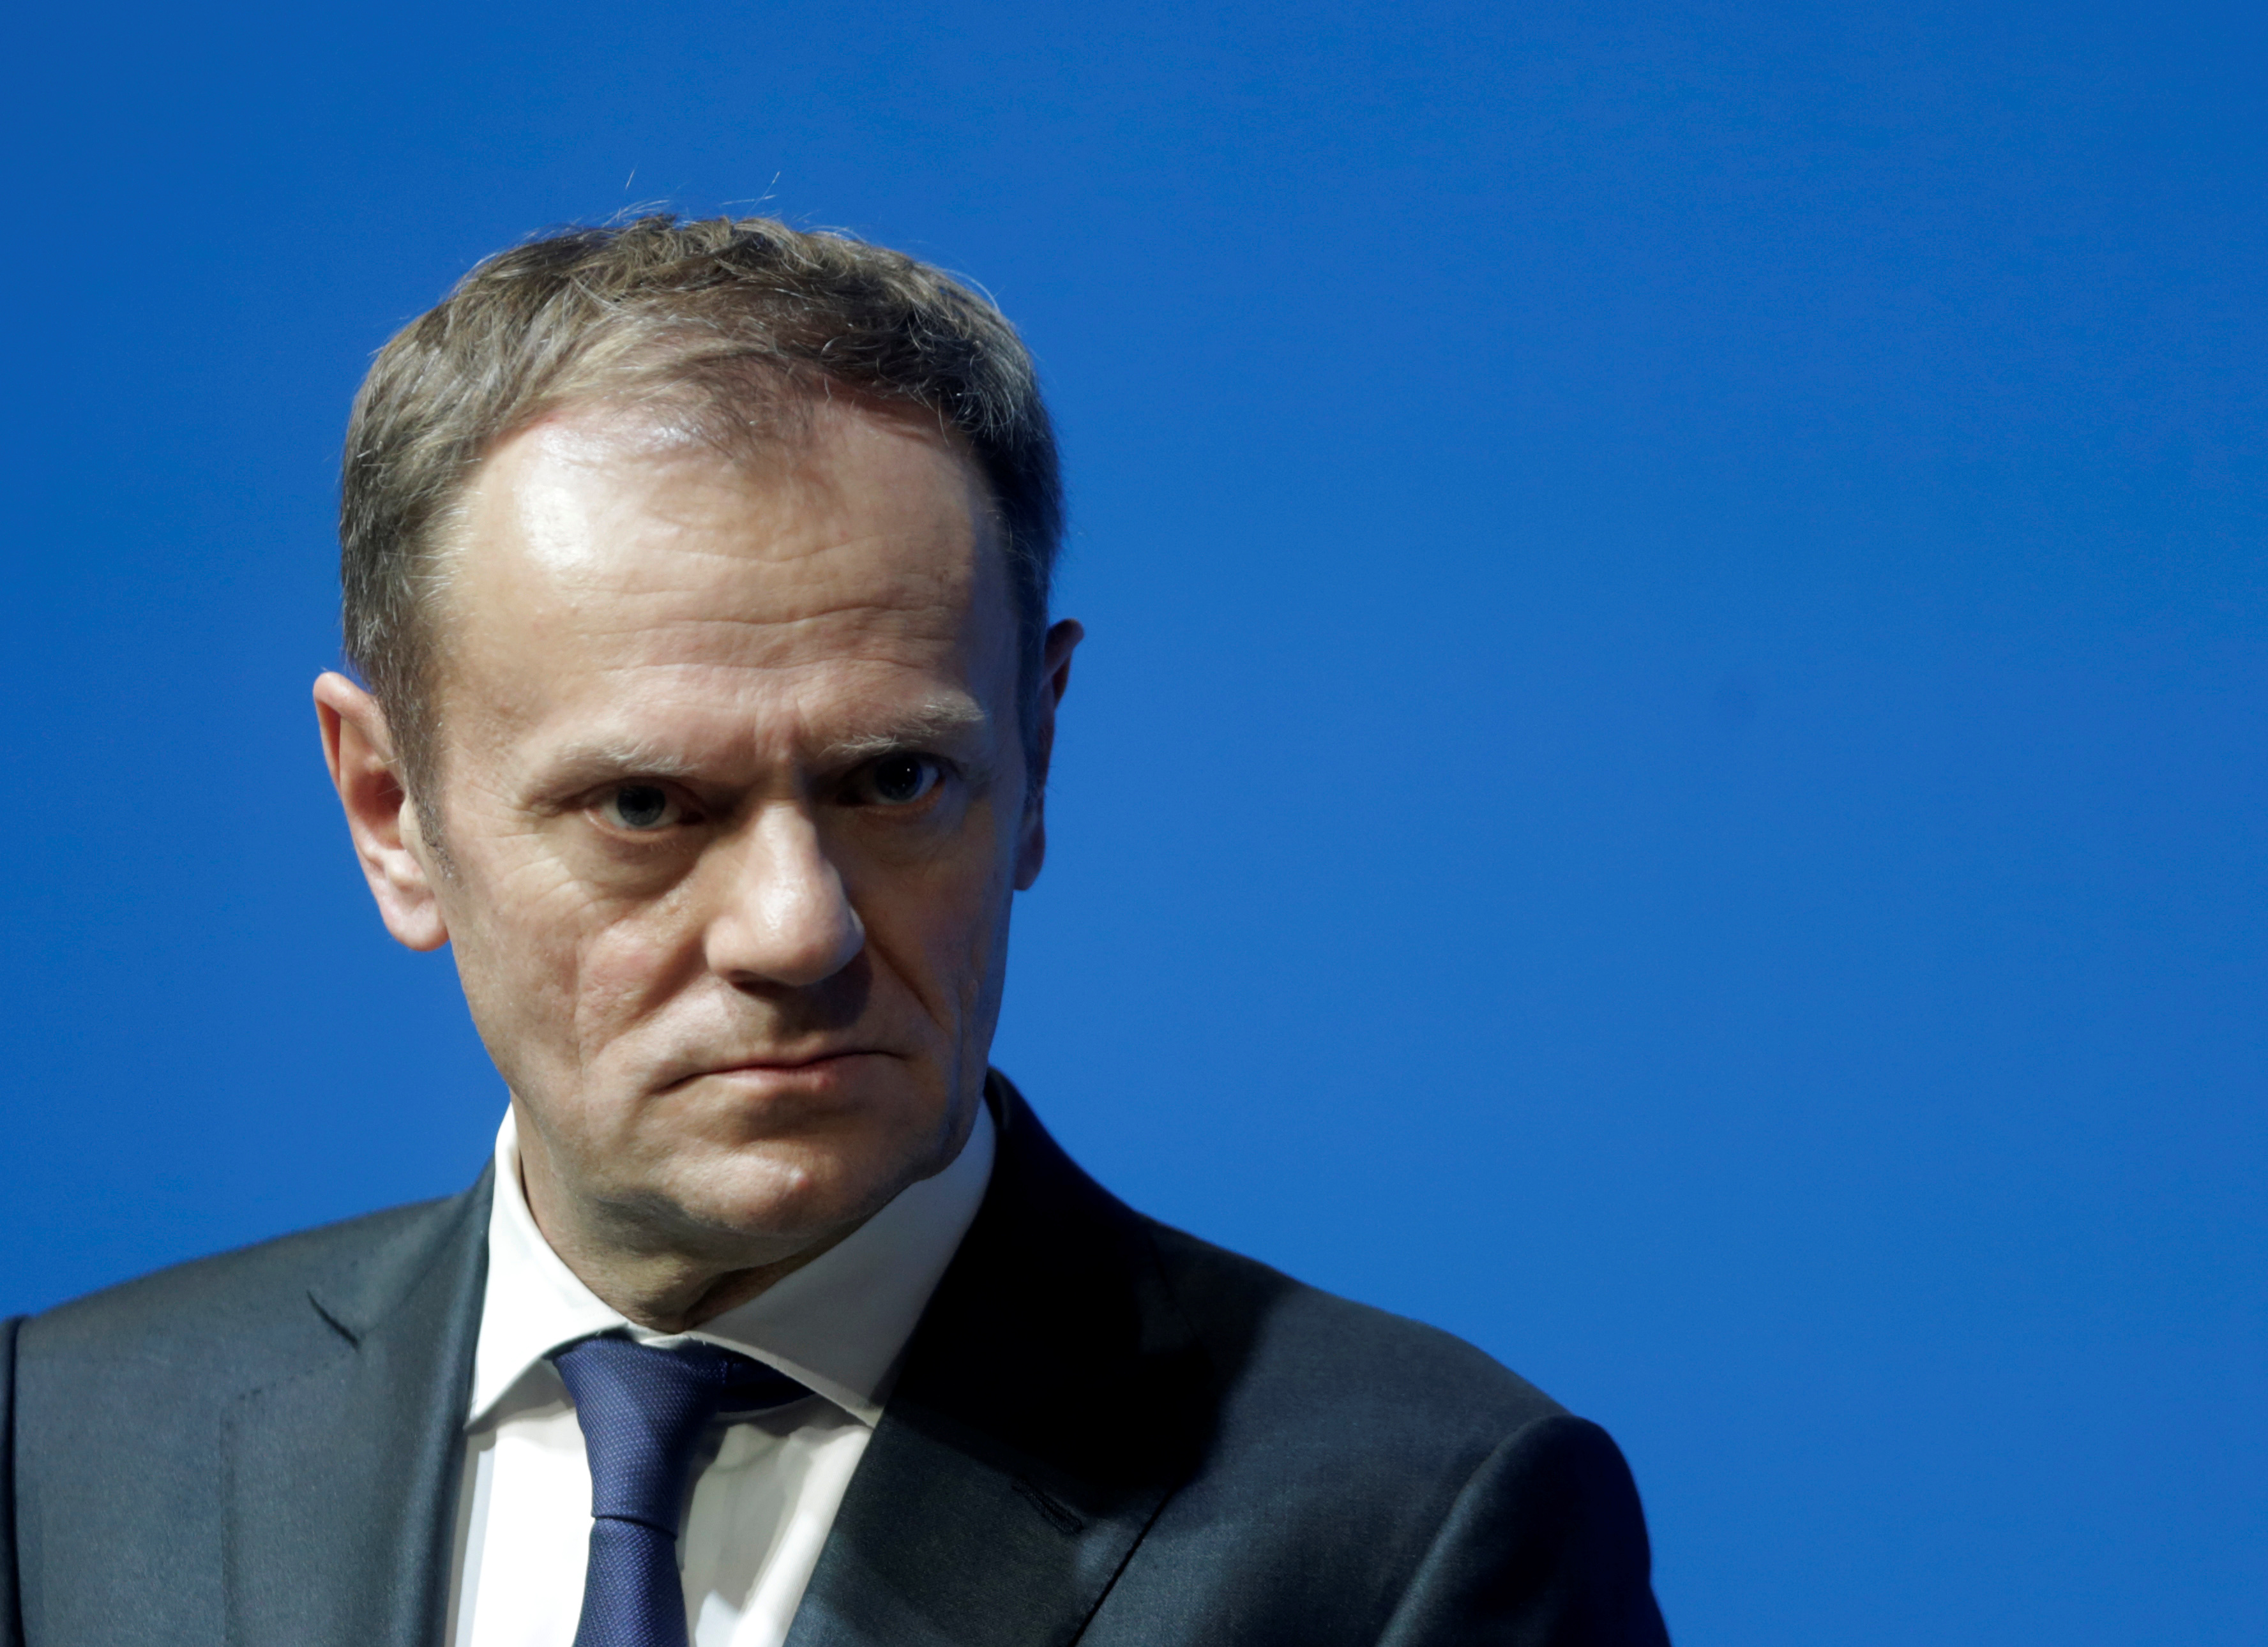 "European Council President Donald Tusk listens during a news conference in Tallinn, Estonia, Jan. 31, 2017. Tusk said in a letter to EU leaders that ""the change in Washington puts the European Union in a difficult situation, with the new administrati..."